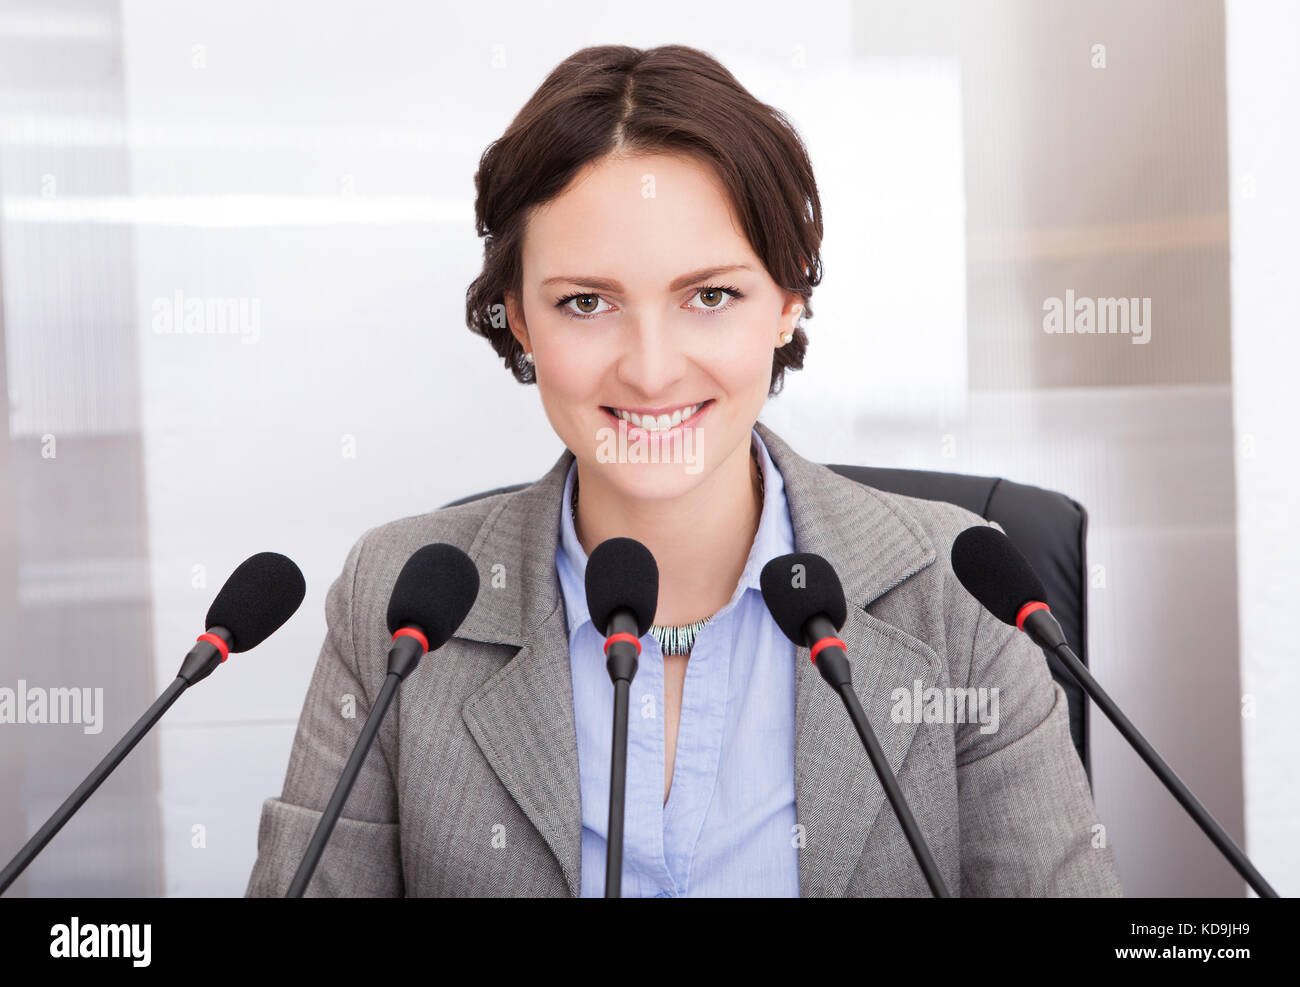 Smiling Businesswoman Holding Paper Speaking In Front Of Multiple Microphones - Stock Image